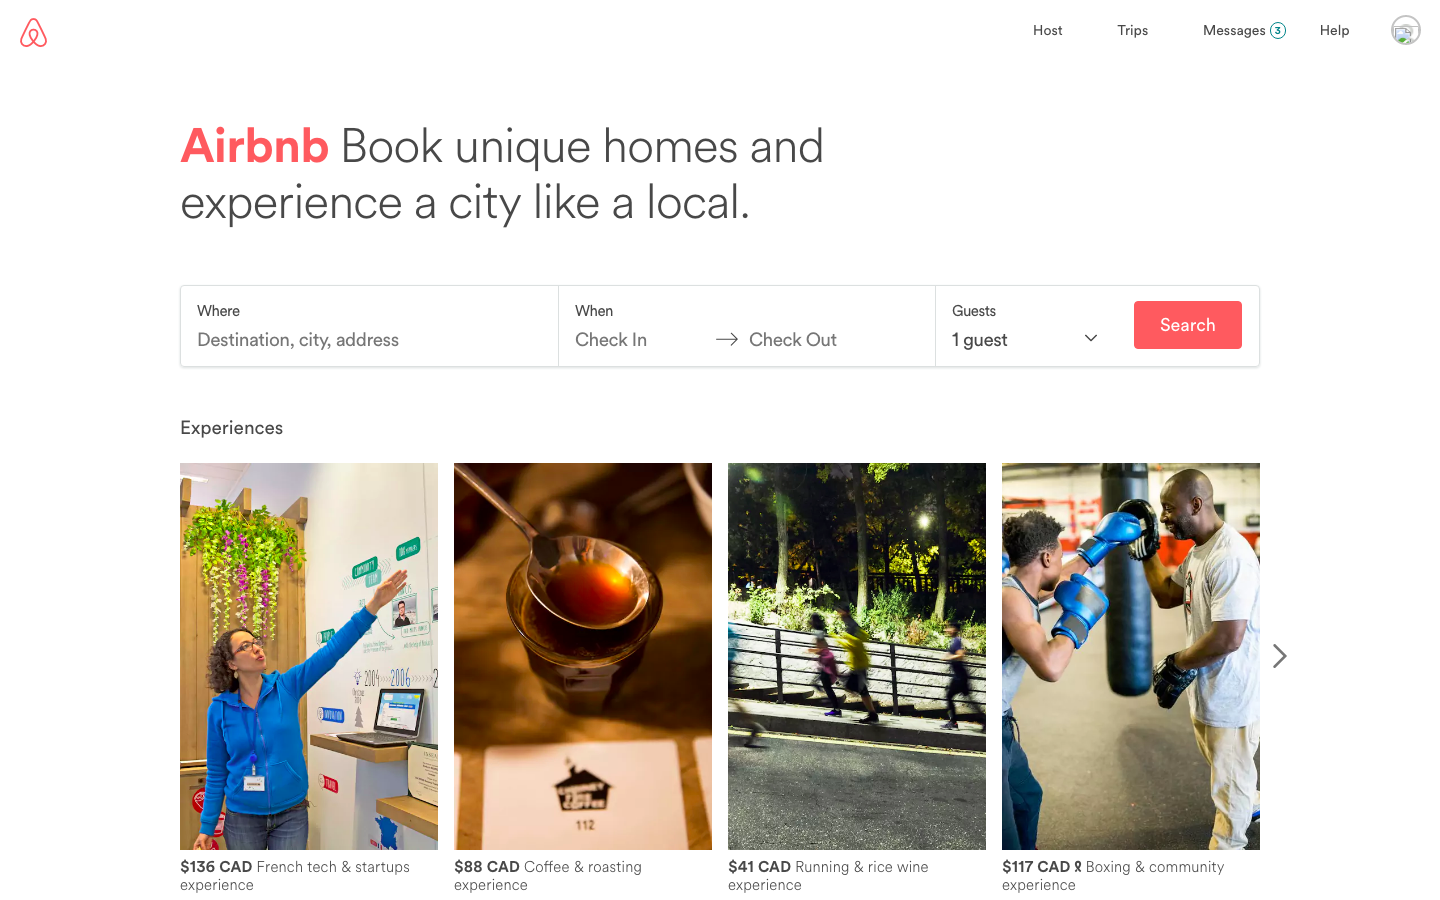 air-bnb-home-page-image